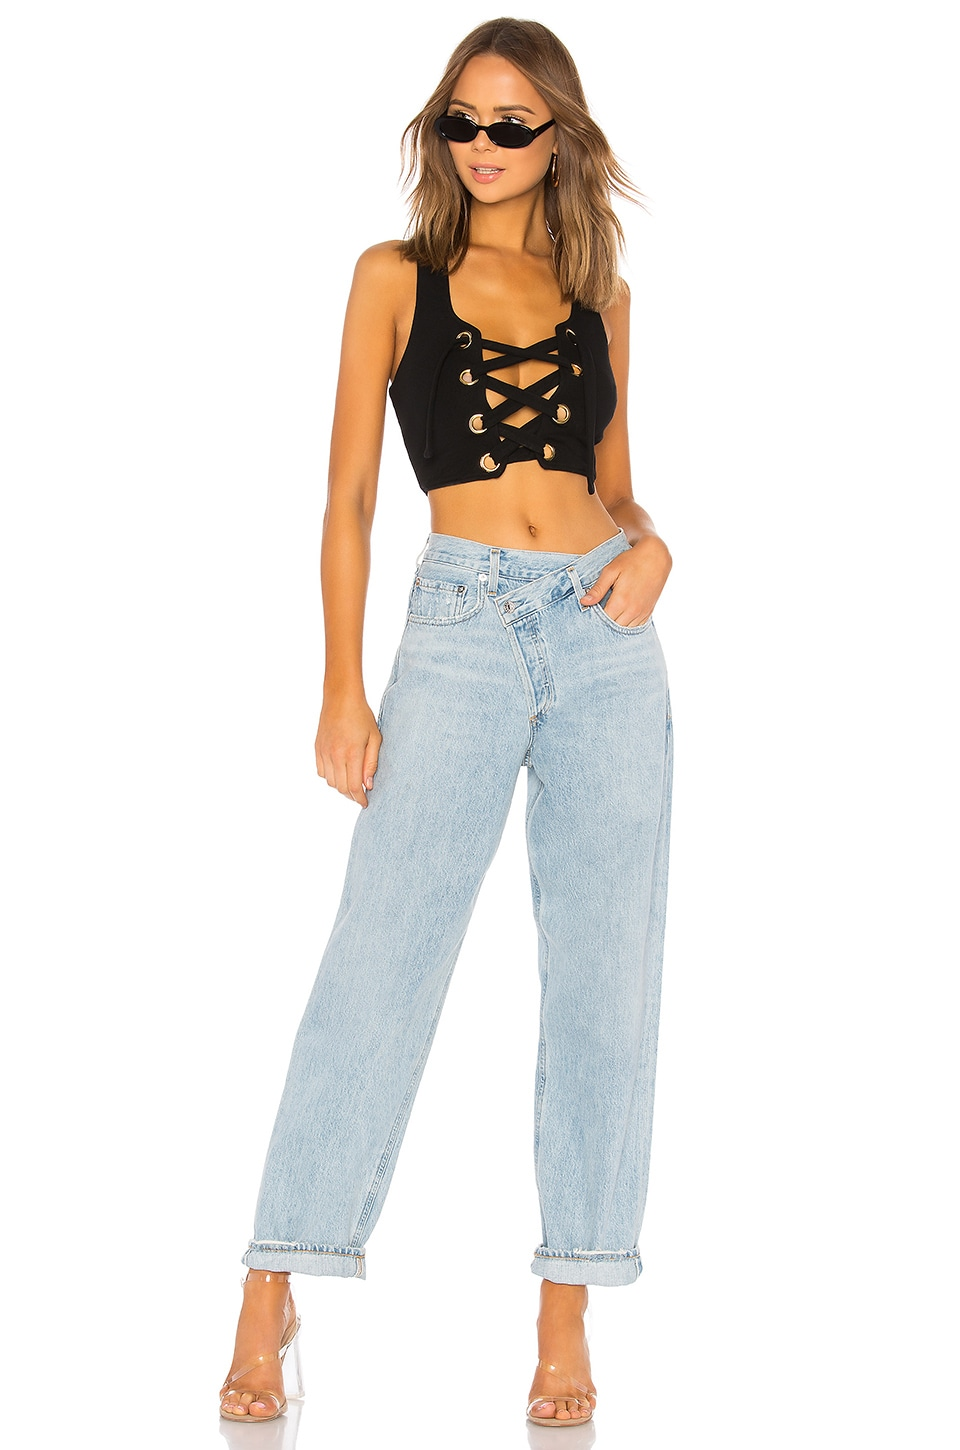 Criss Cross Upsized Jean, view 5, click to view large image.